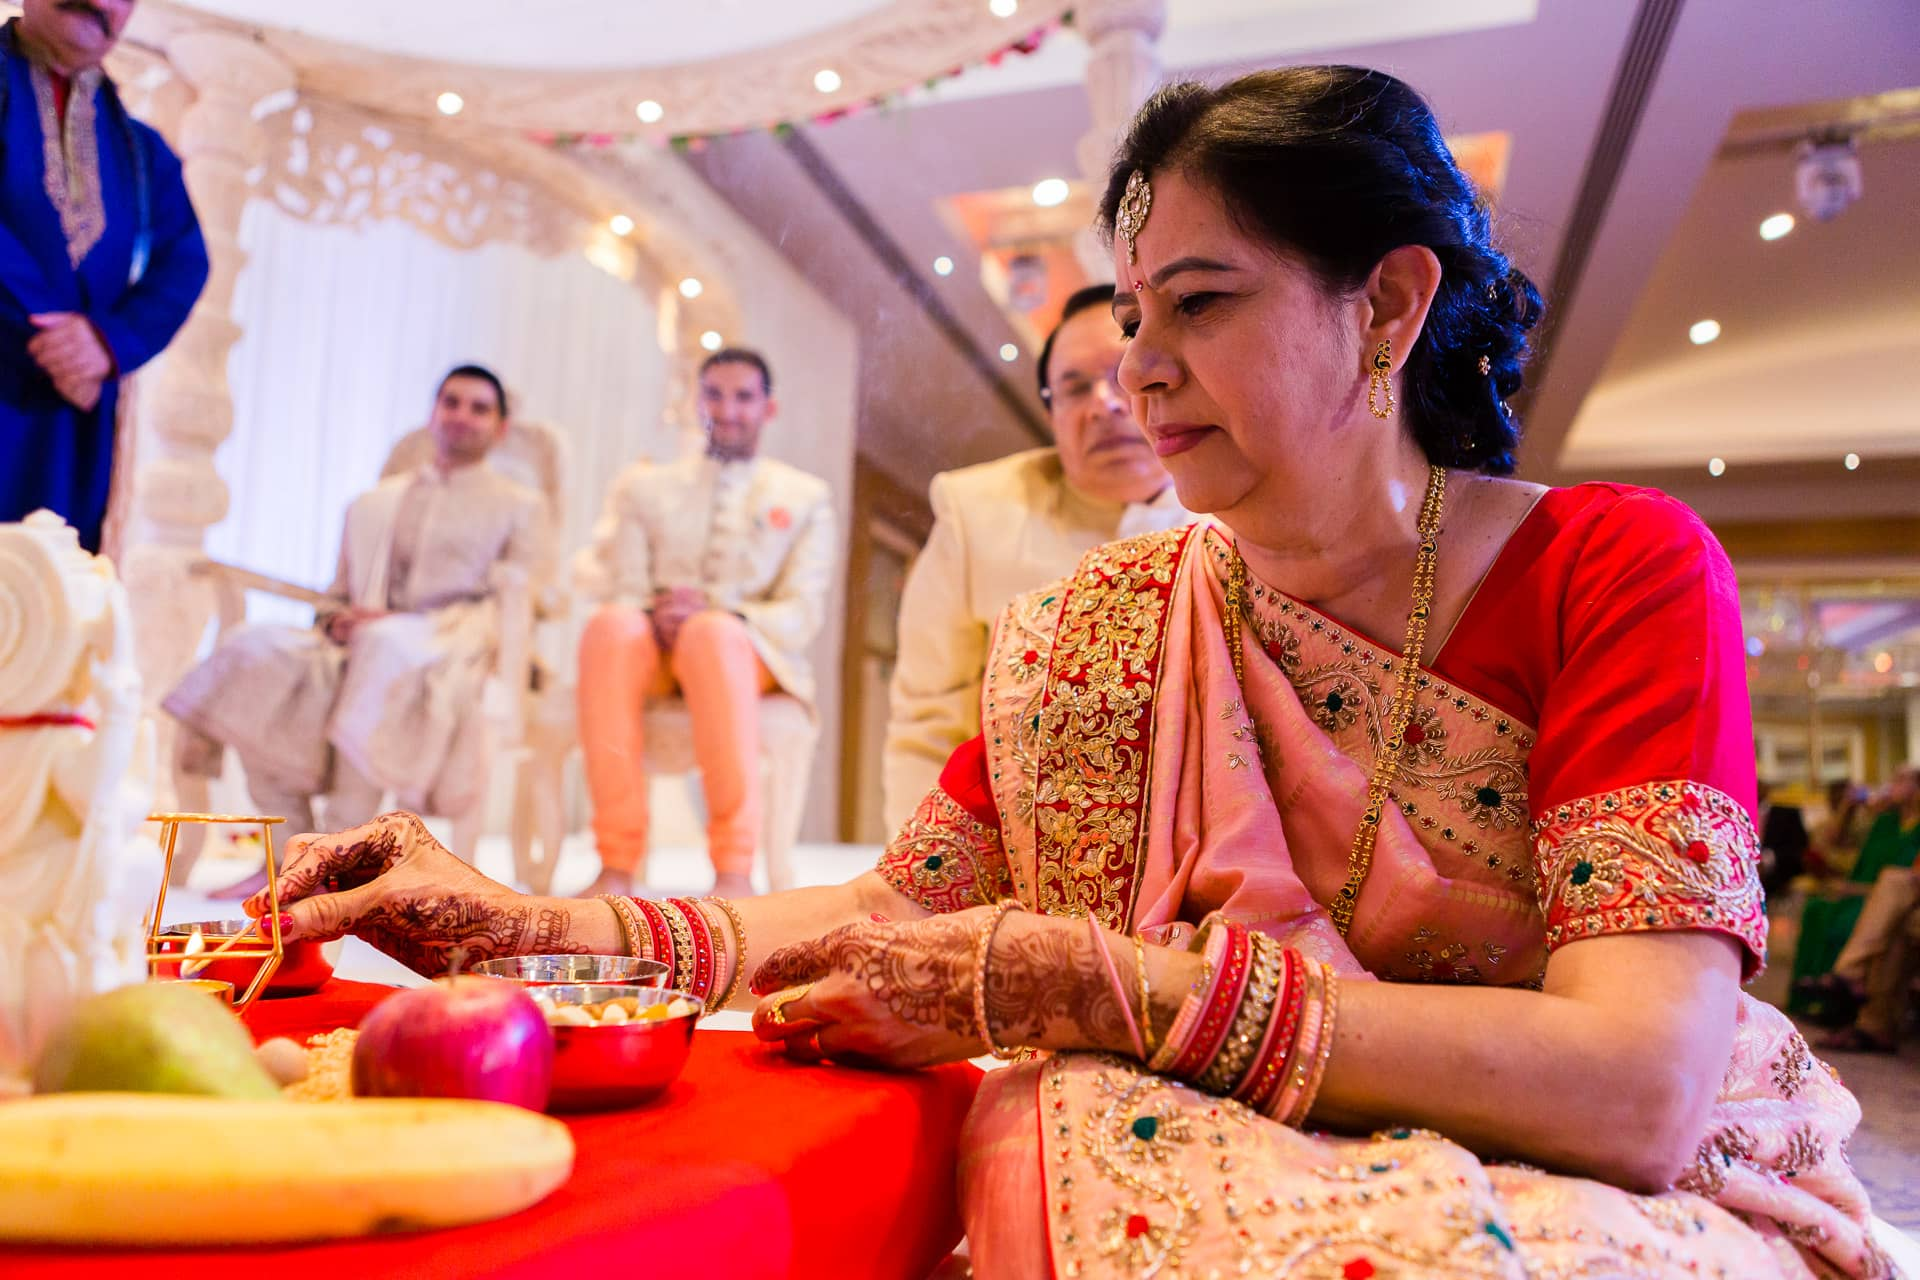 Mother of the bride lighting candle during Hindu wedding ceremony